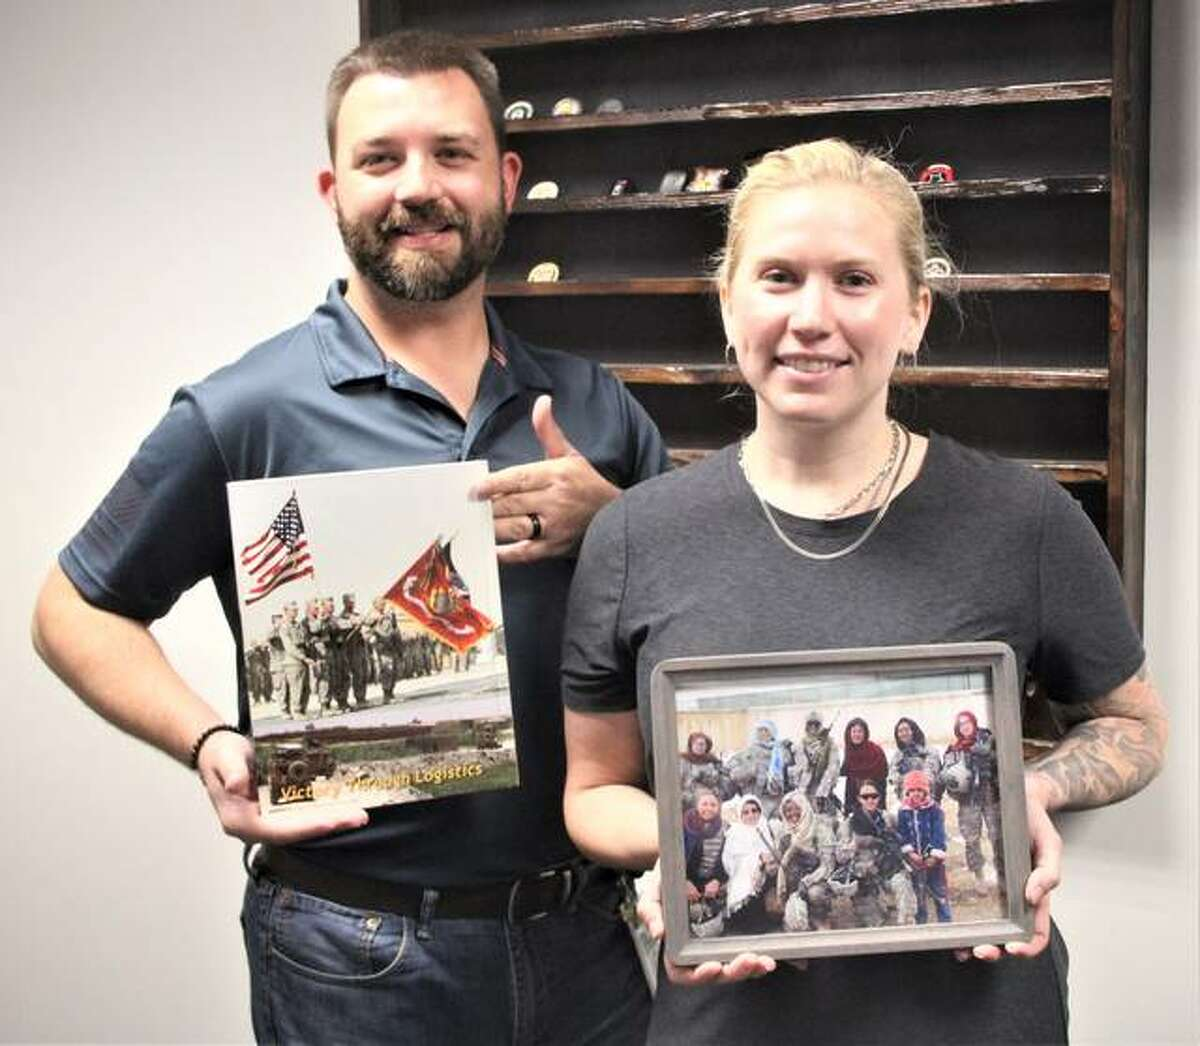 Bradley Yount, left, and Torie Ryan are veterans service officer benefit specialists with the Madison County Veterans Assistance Commission. Yount was a Marine satellite communications specialist and Ryan served as a medic with the 101st Airborne. Both are veterans of Afghanistan and talked about their experiences and feelings as the U.S. pulled out of the country last week.